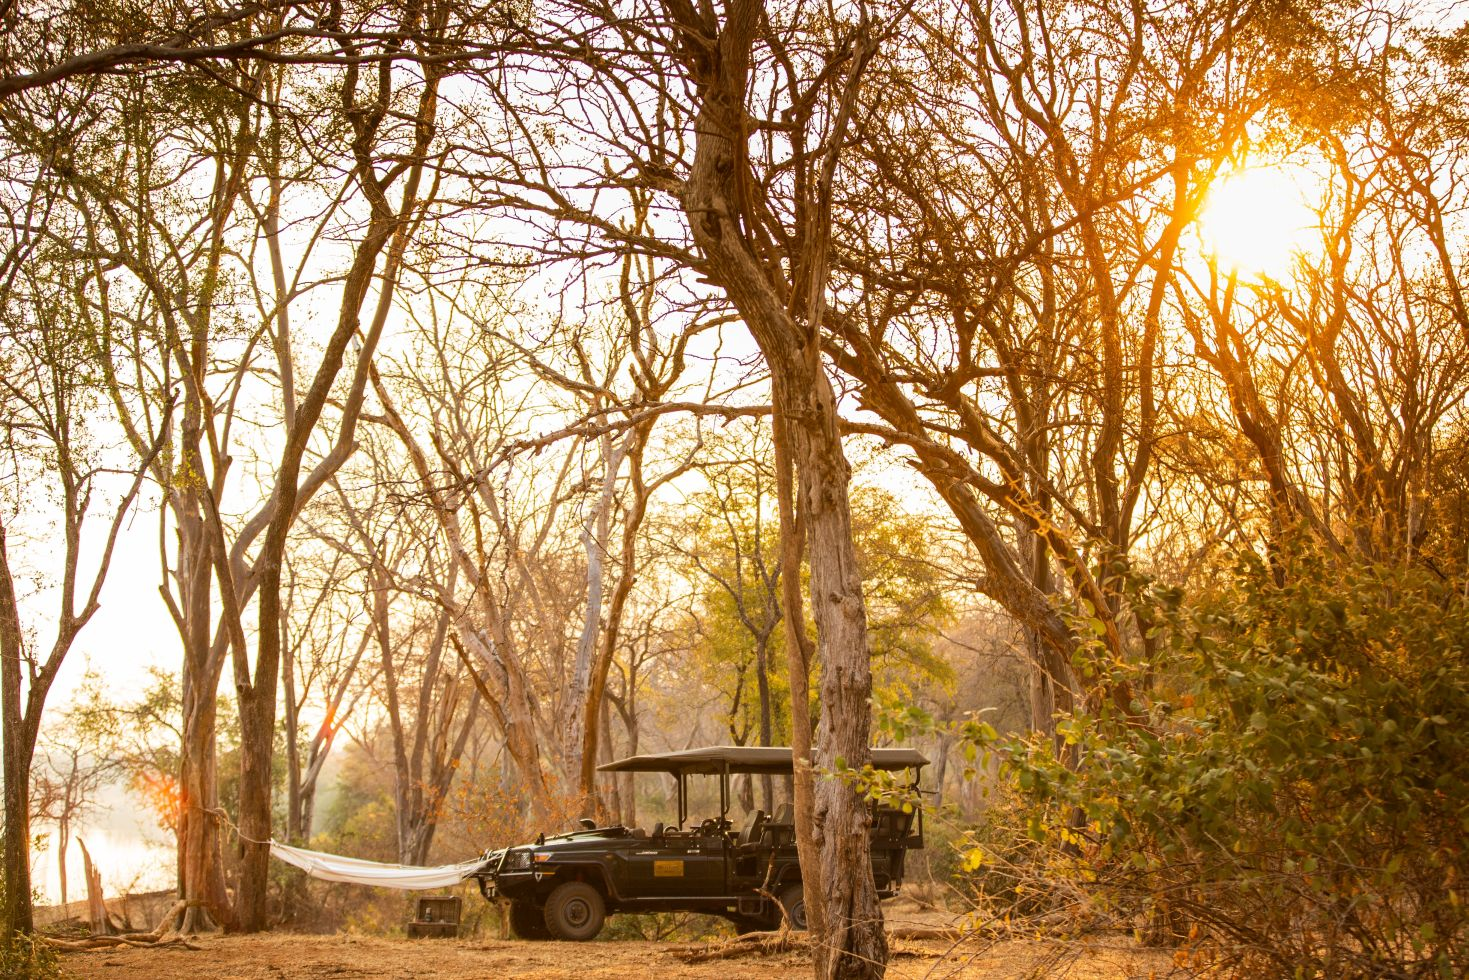 Located on the 291,000-acre private Sapi Reserve in Zimbabwe, Great Plains will open Tembo Plains Campthis August.